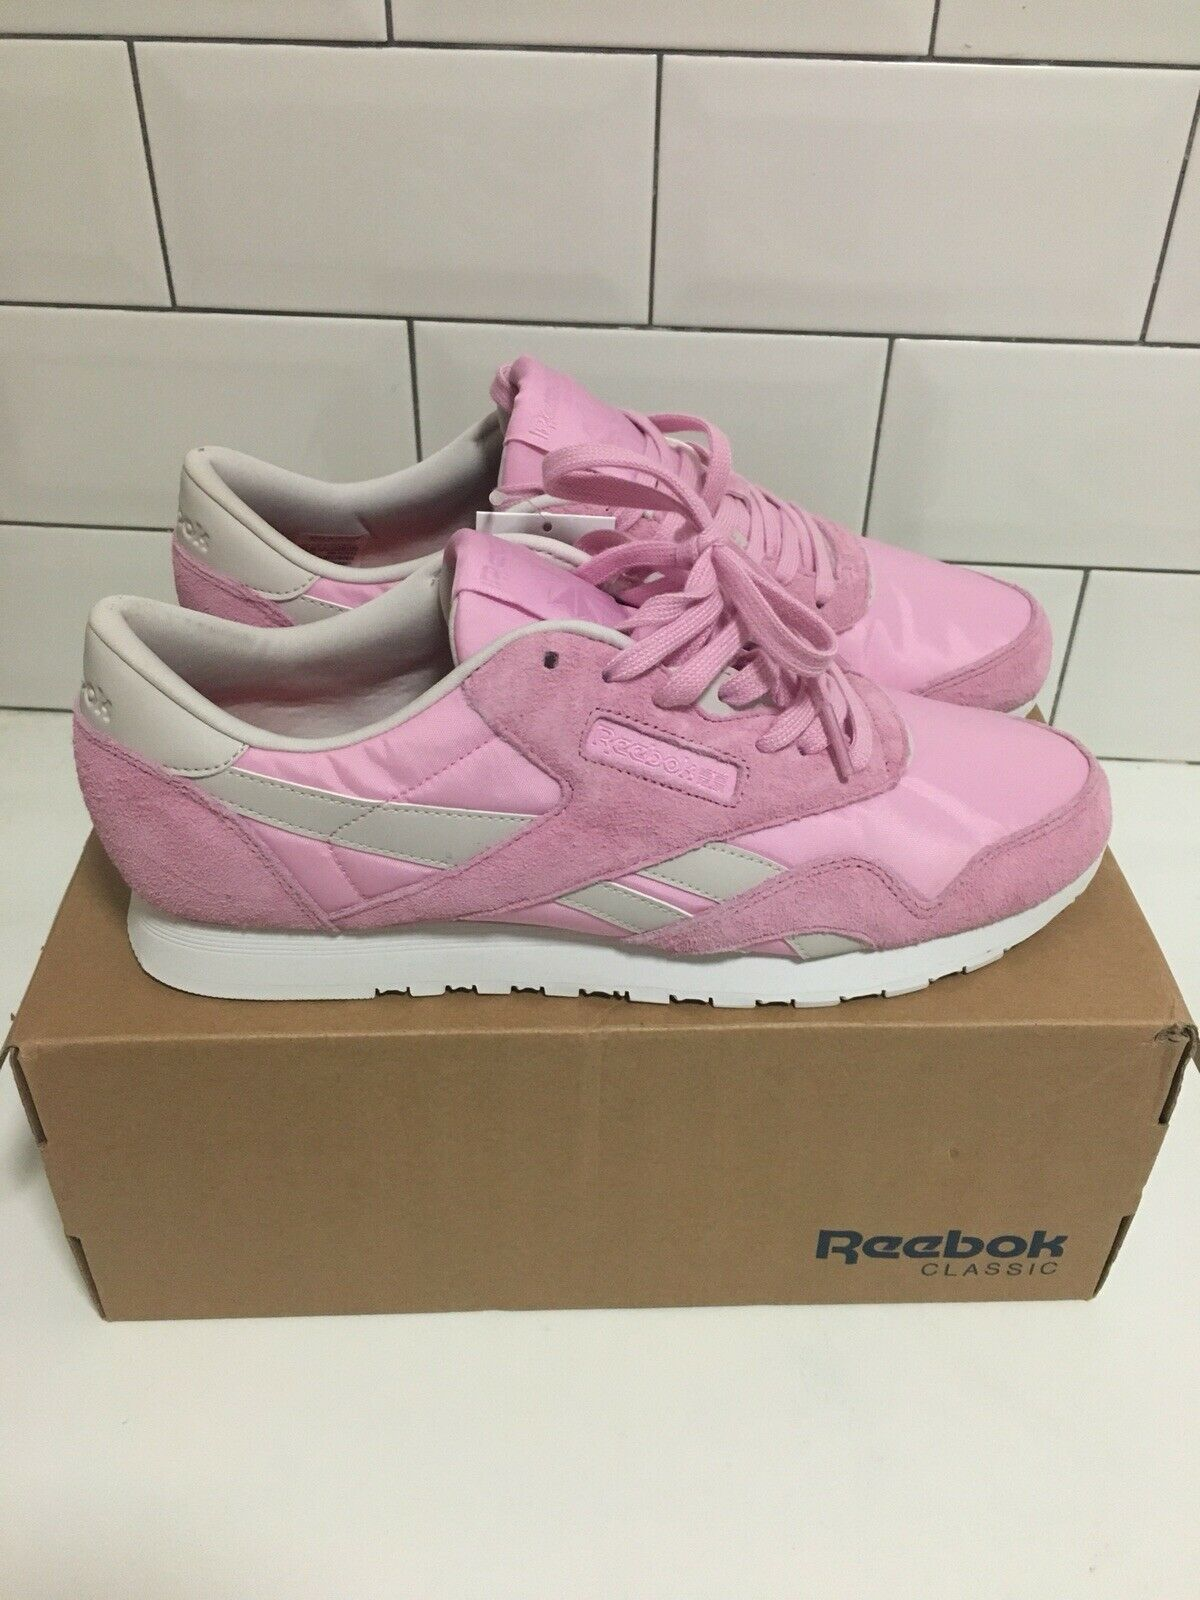 Rebook classic trainers Limited Edition